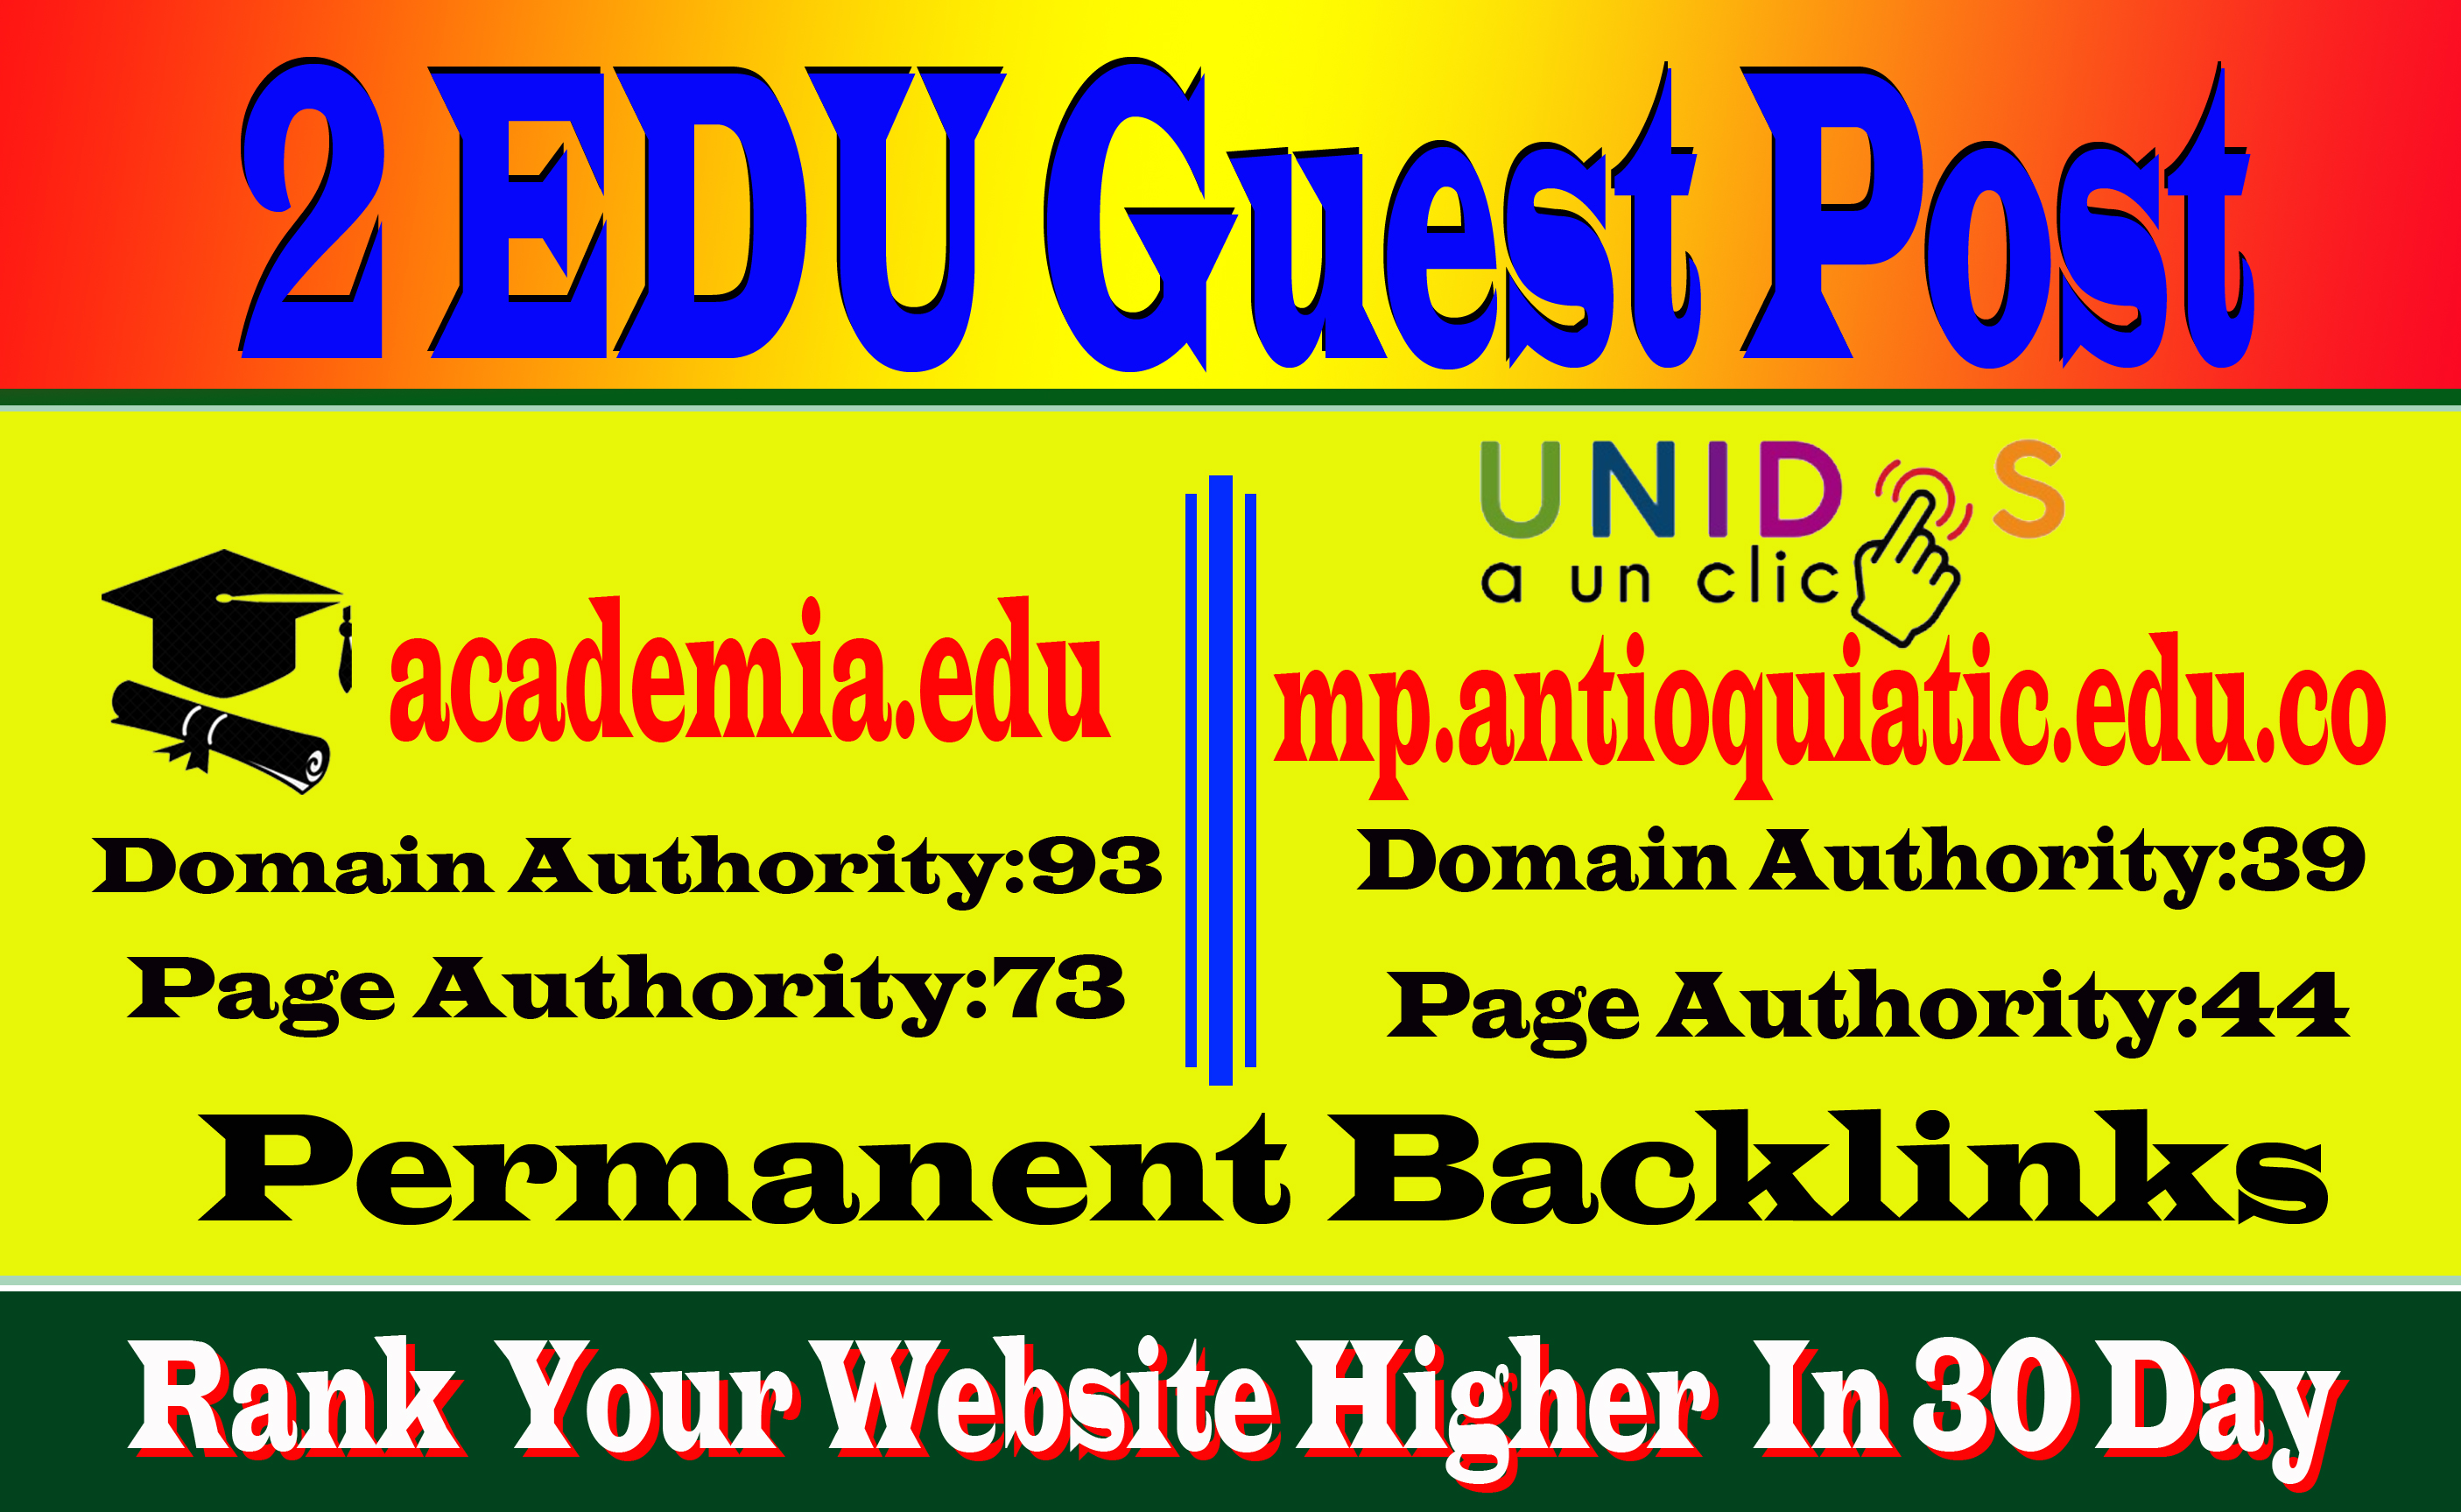 Write and Publish 2 Edu Guest Posts on High DA to Boost Keyword Ranking